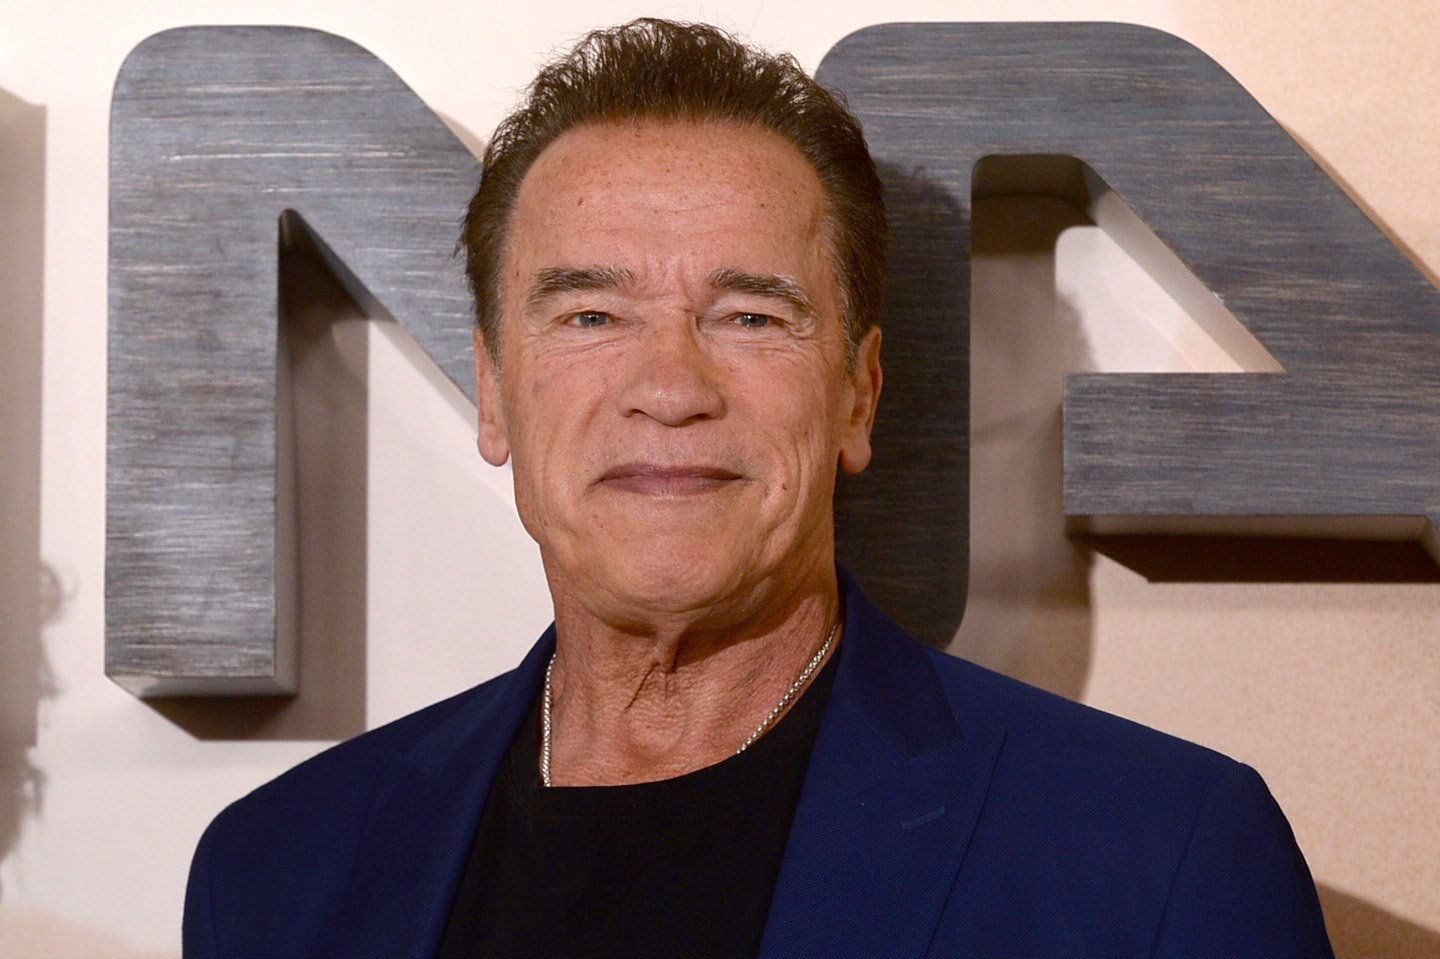 """Arnold Schwarzenegger attends the """"Terminator: Dark Fate"""" photocall on October 17, 2019, in London, England.   Source: Getty Images."""